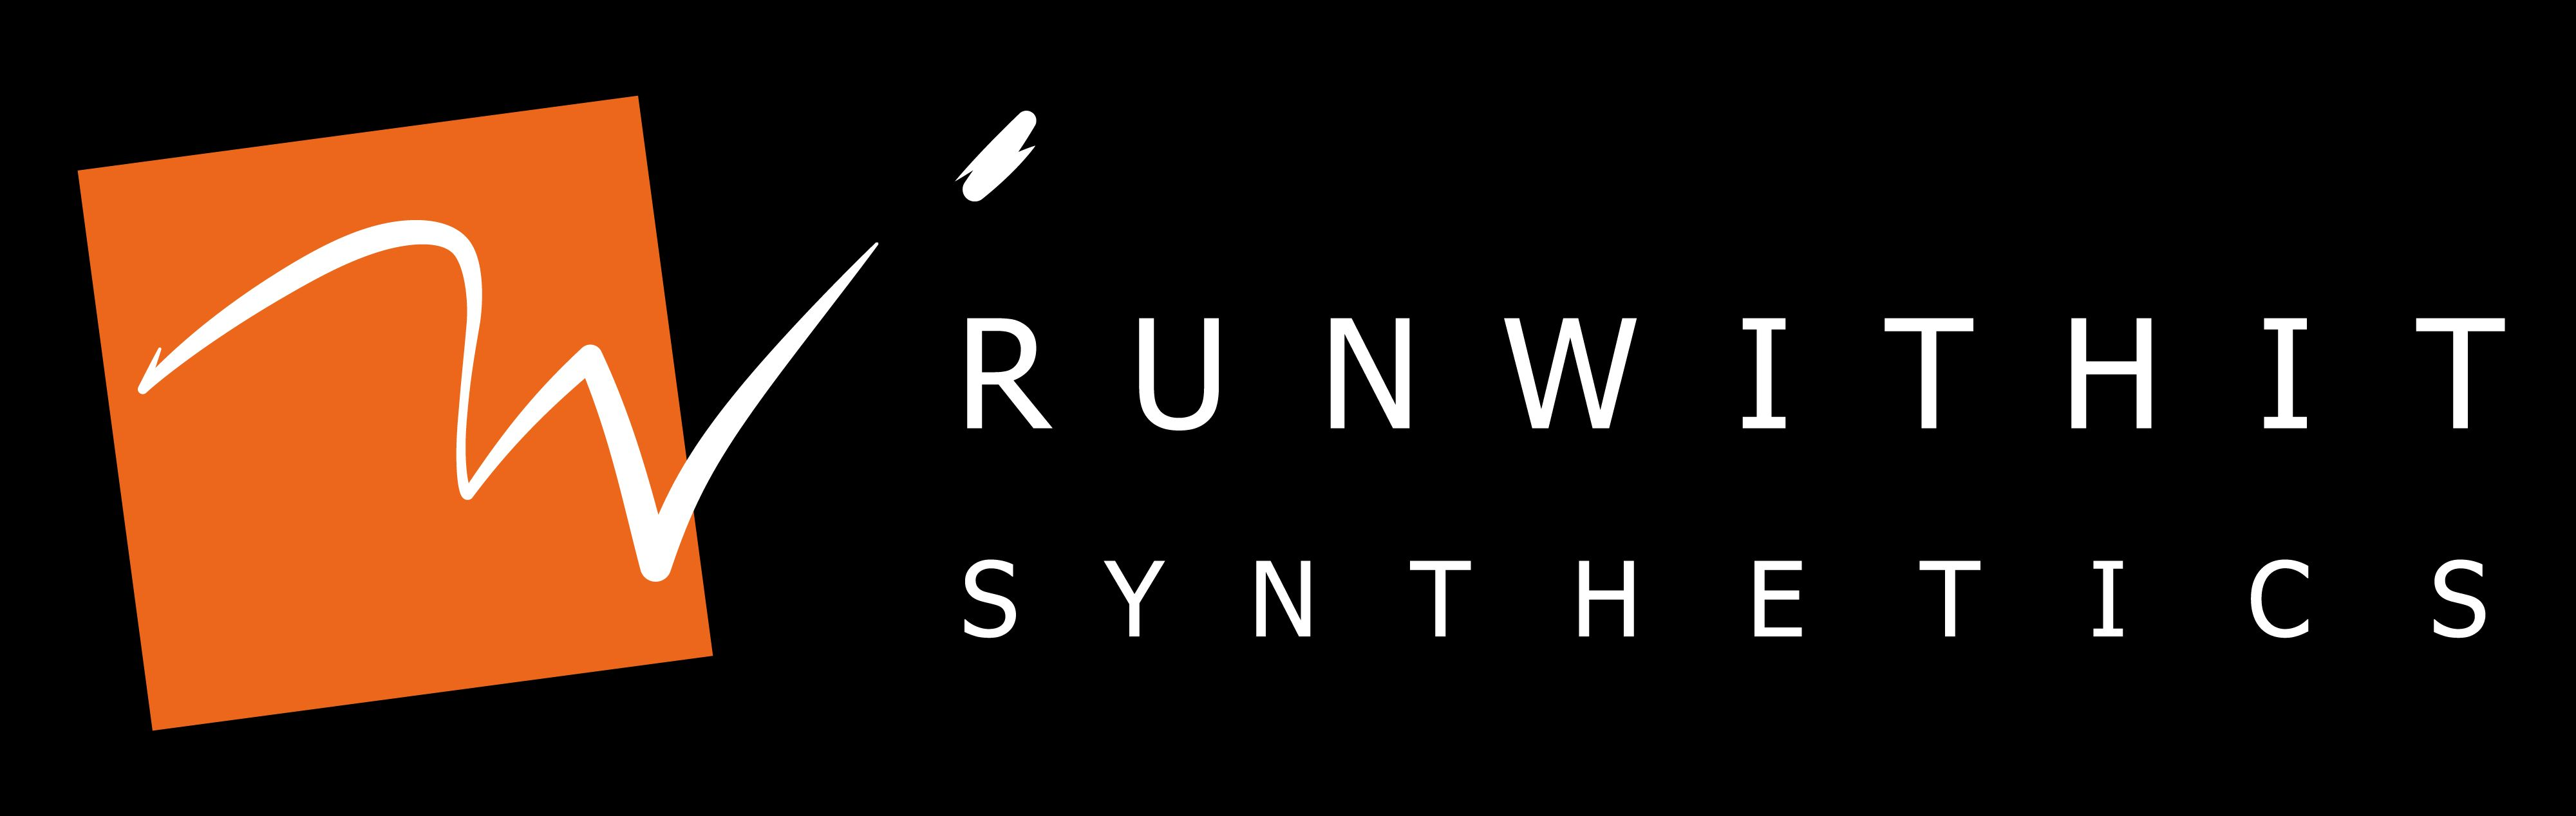 Runwithit Synthetics Inc.